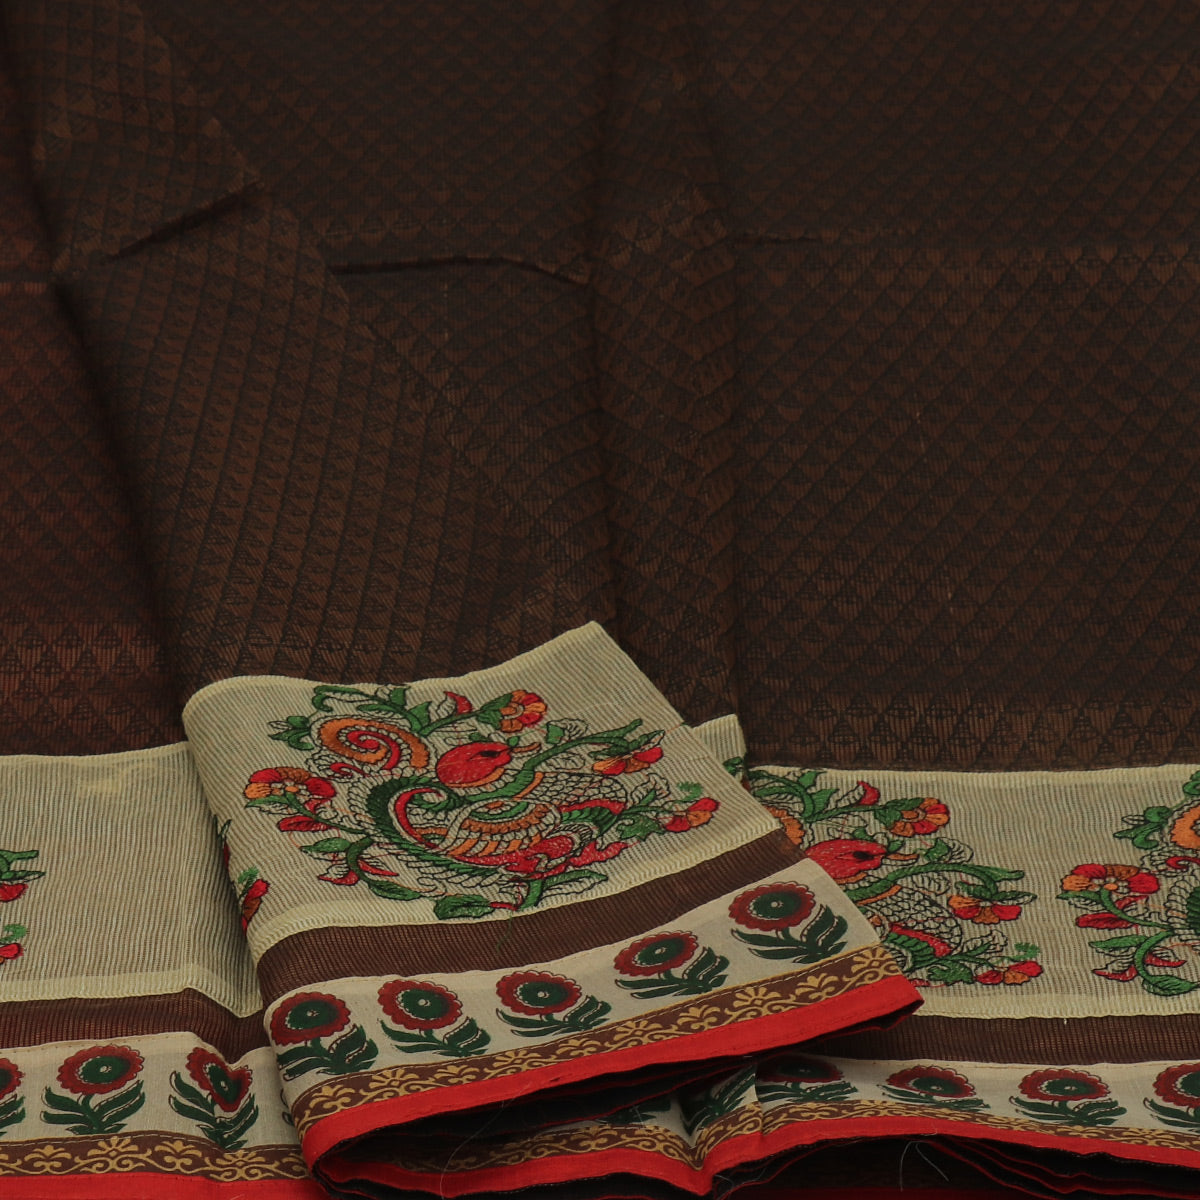 Kota Cotton Saree Brown with Annam Embroidery and Flower Border